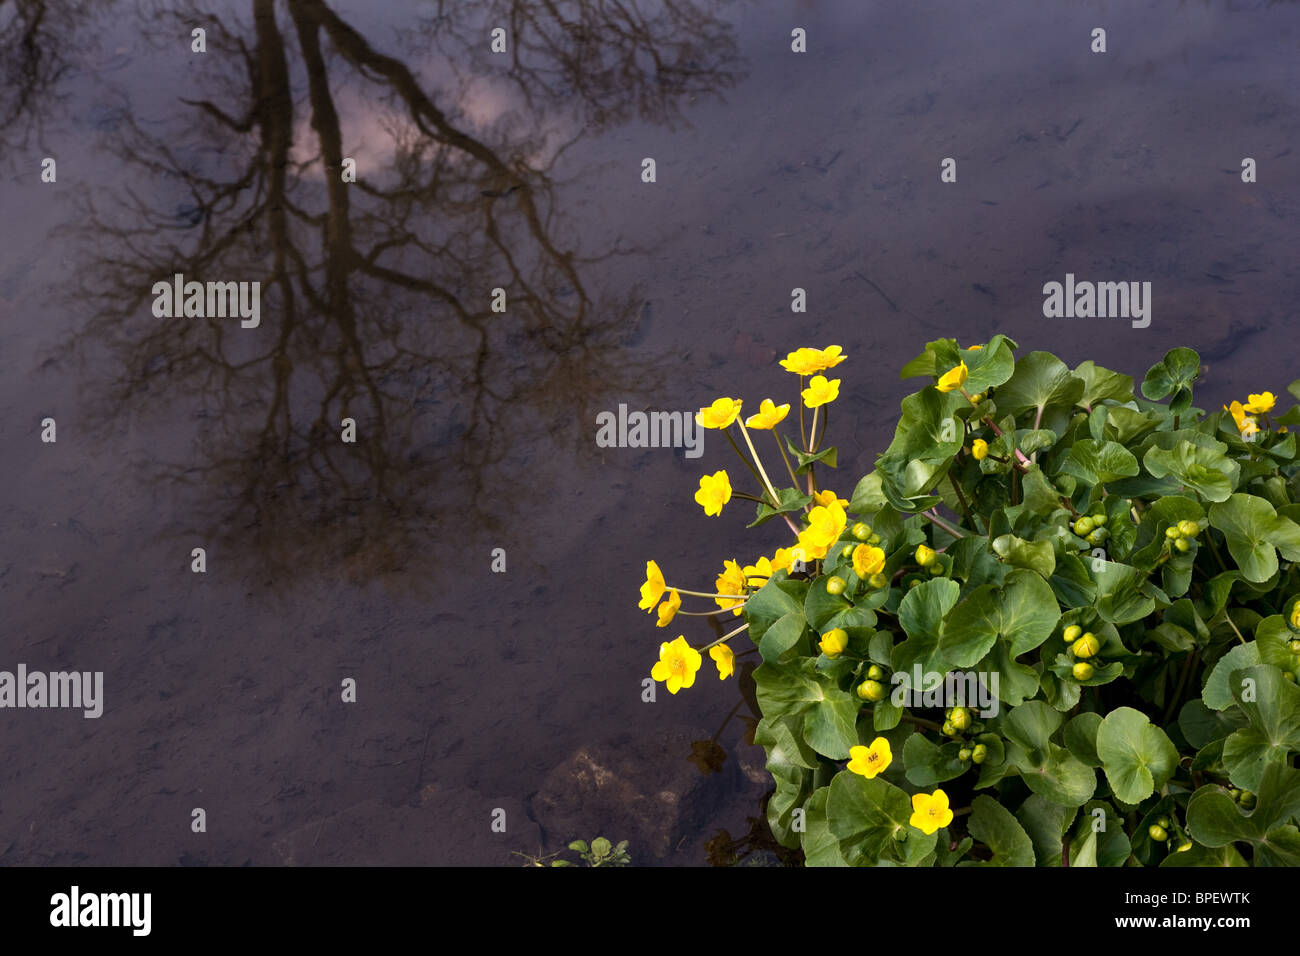 Marsh Marigold Caltha palustris growing by a slow running river reflecting tree and sky - Stock Image